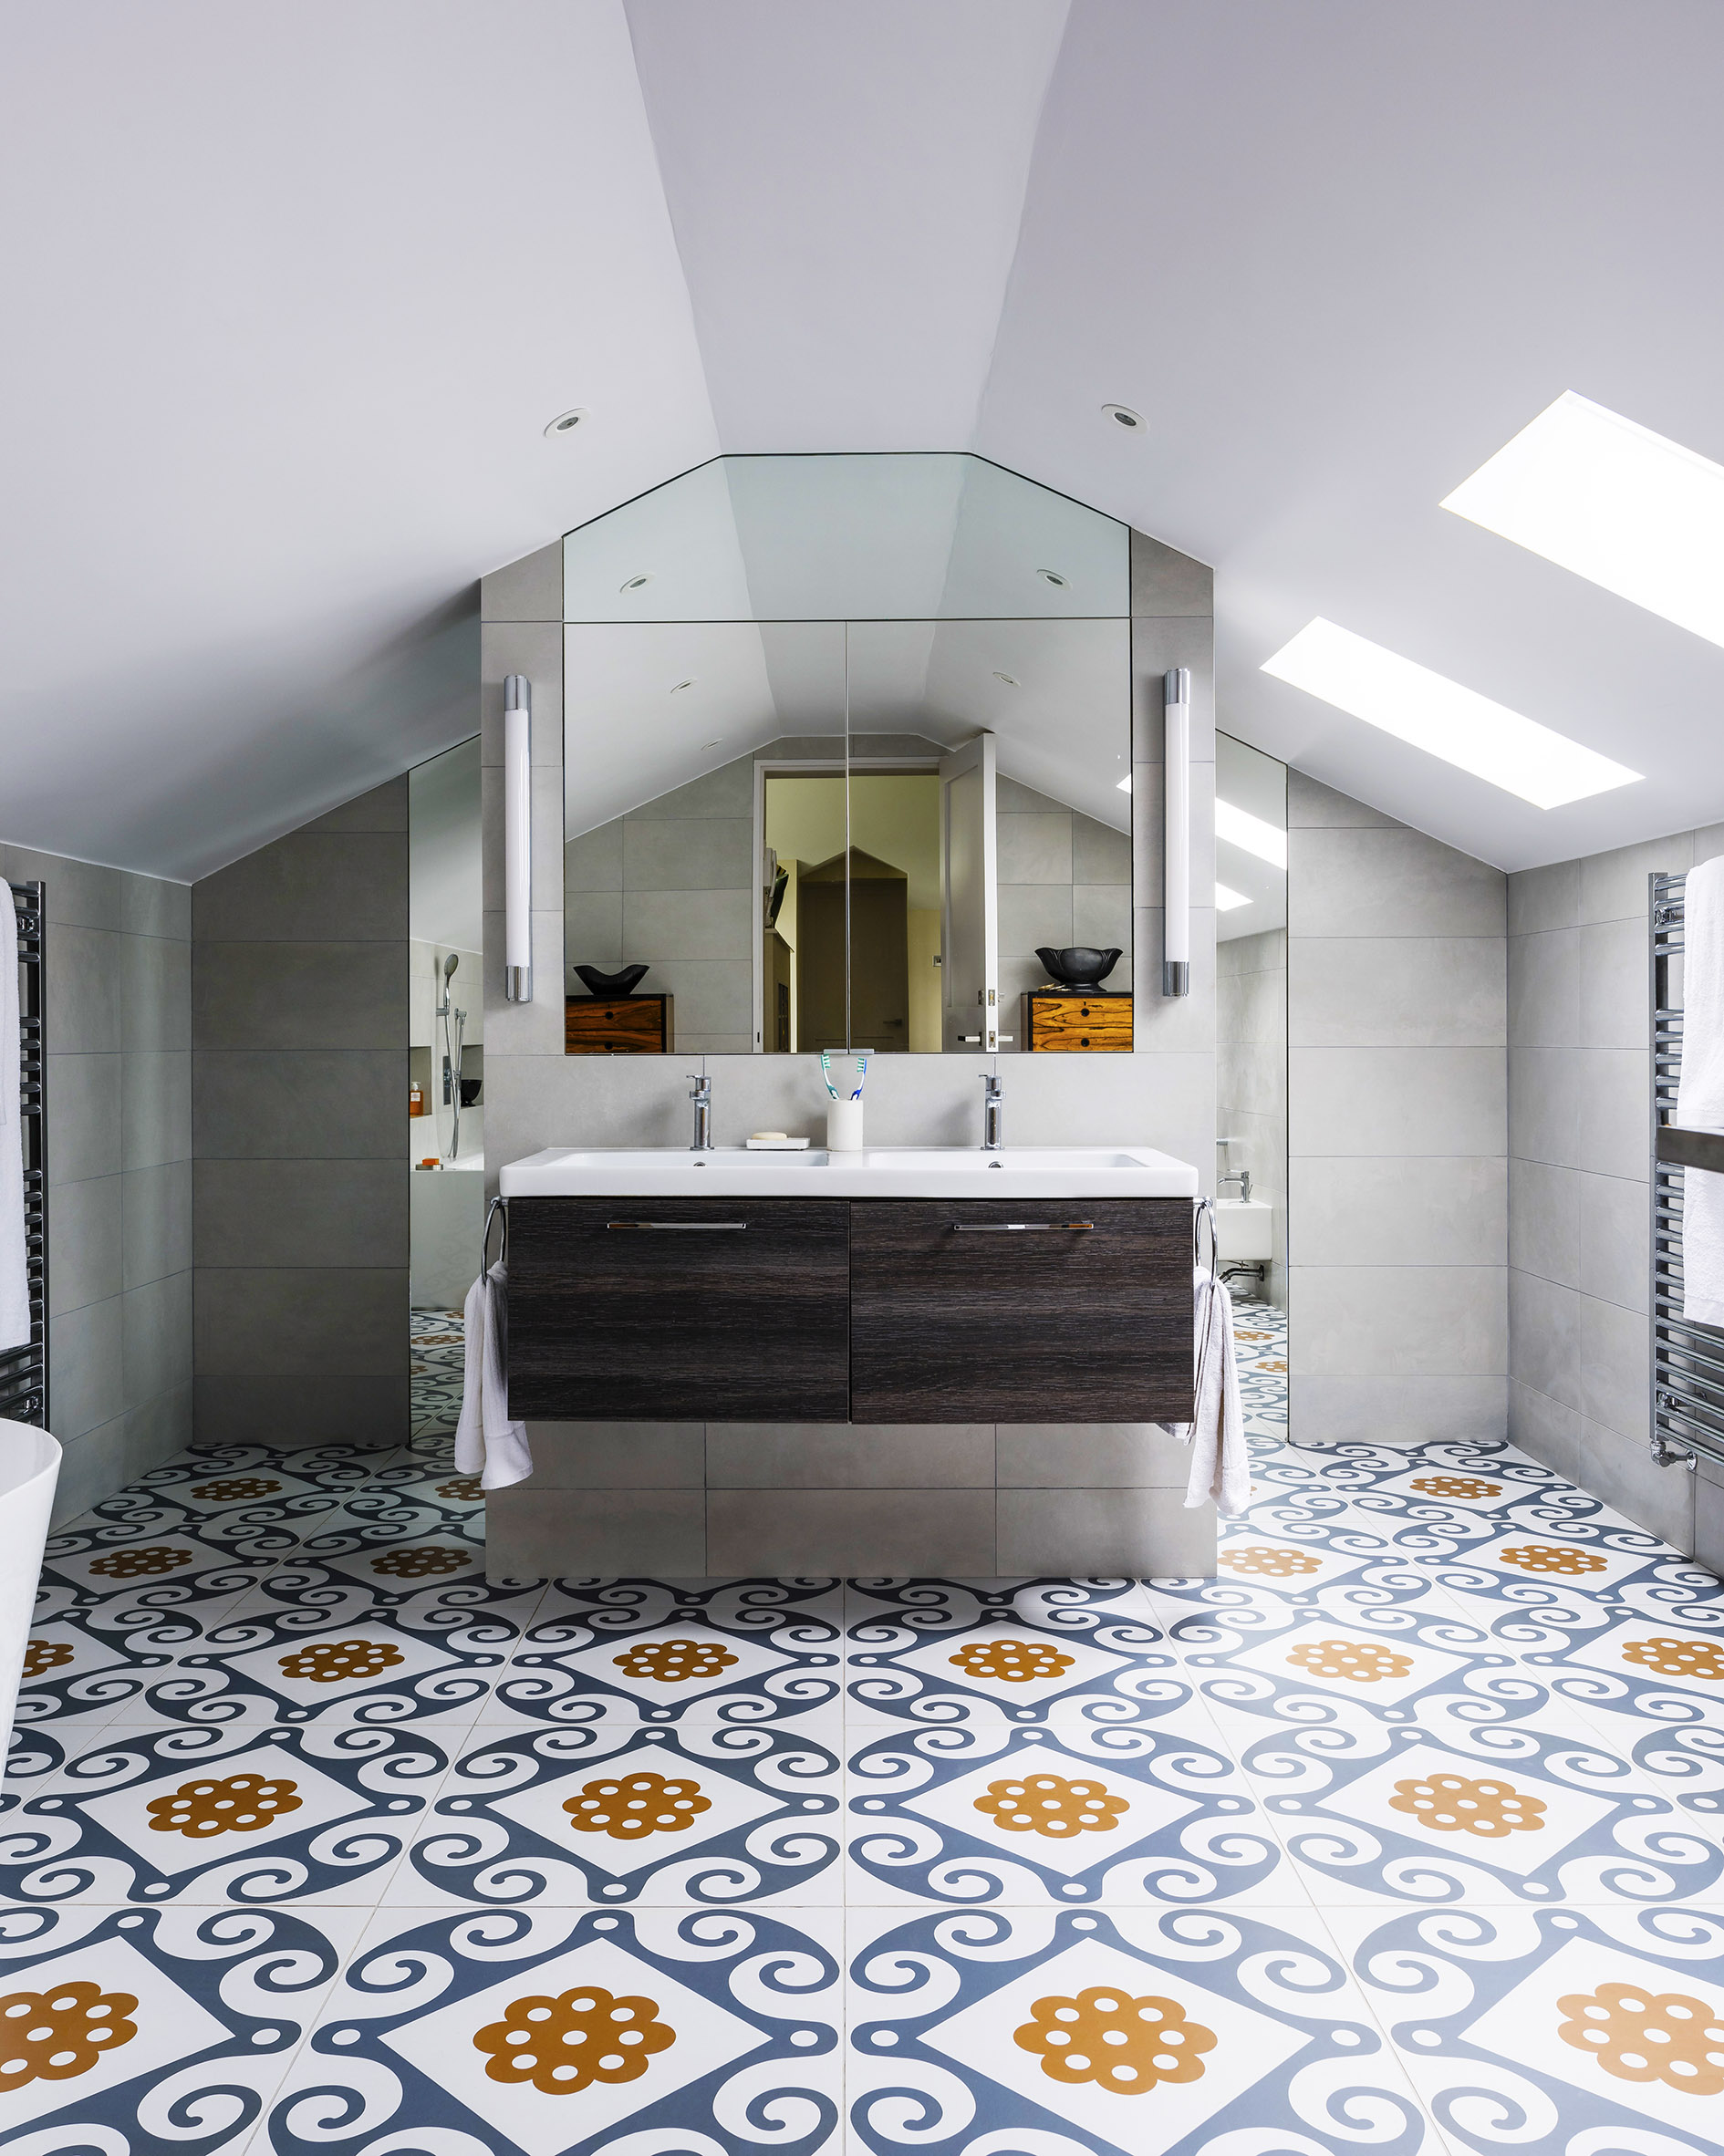 Refin's Majolica tiles in a bathroom designed by Michael Daly for a house in West Sussex. 60x60 tile